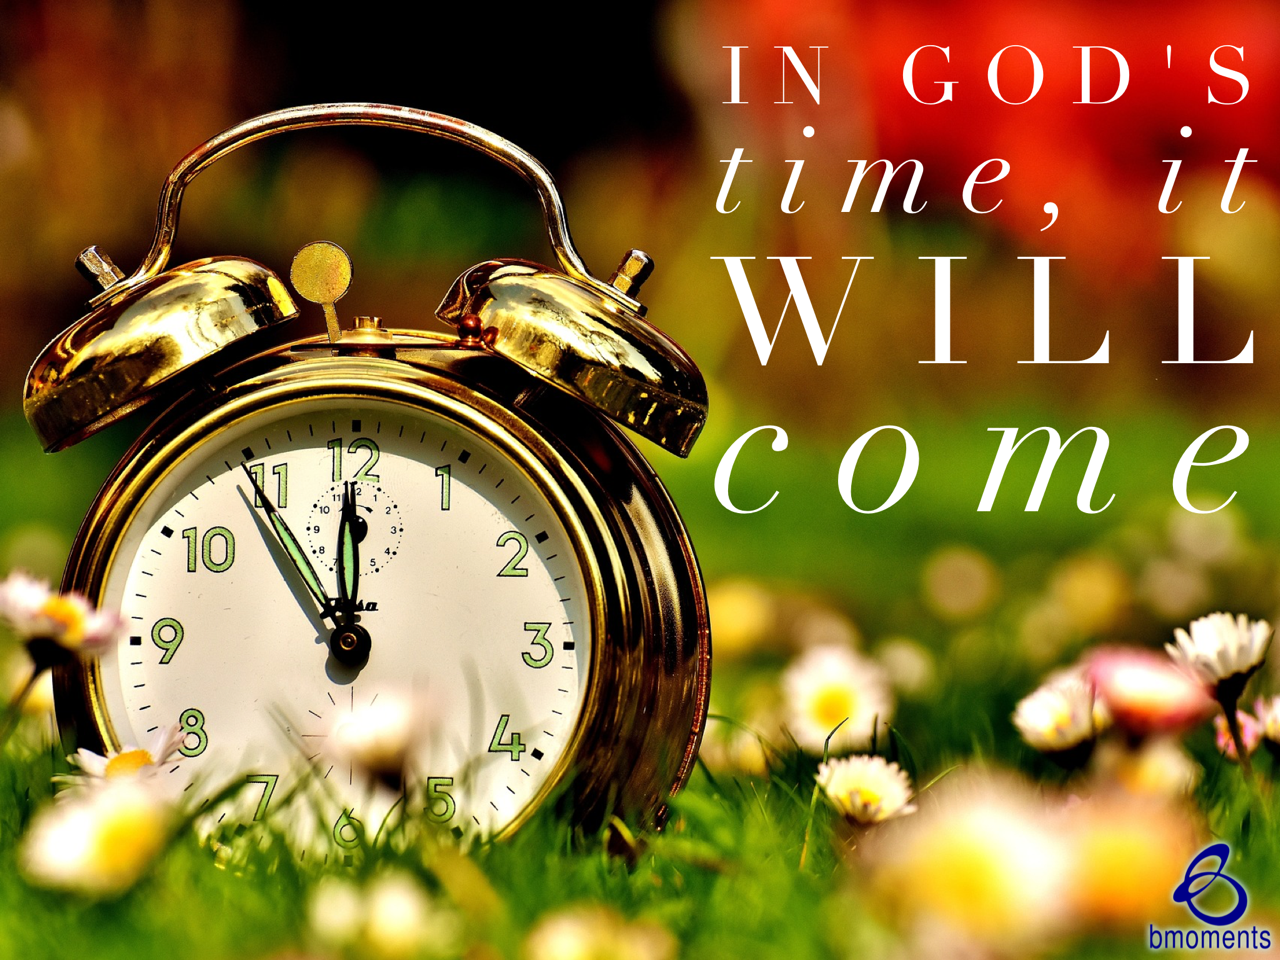 God's Timing Is Precise